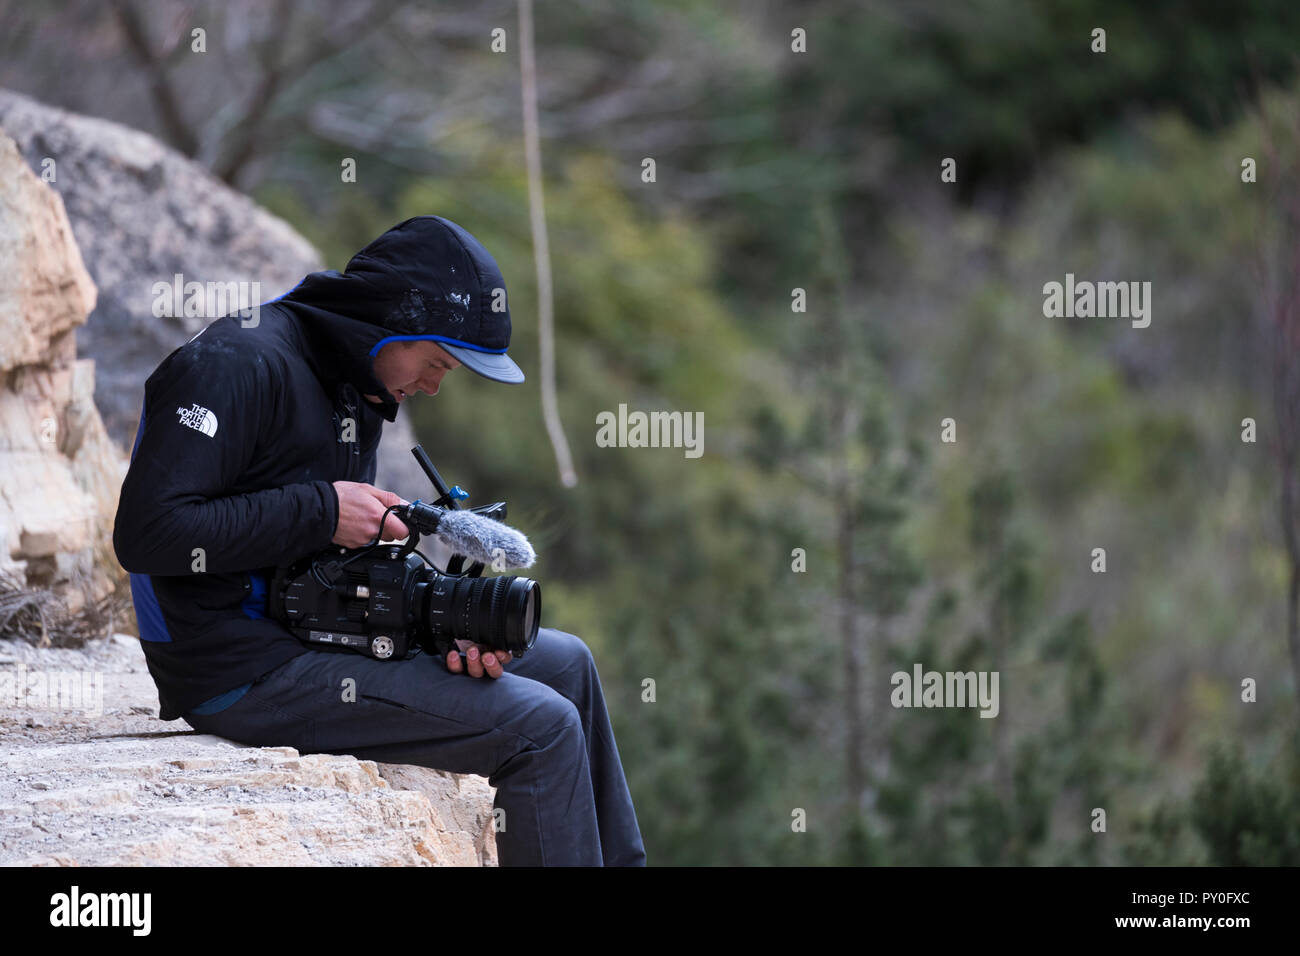 Male videographer sitting on rock formation, pointing his camera and filming something in distance,  Siurana, Catalonia, Spain - Stock Image